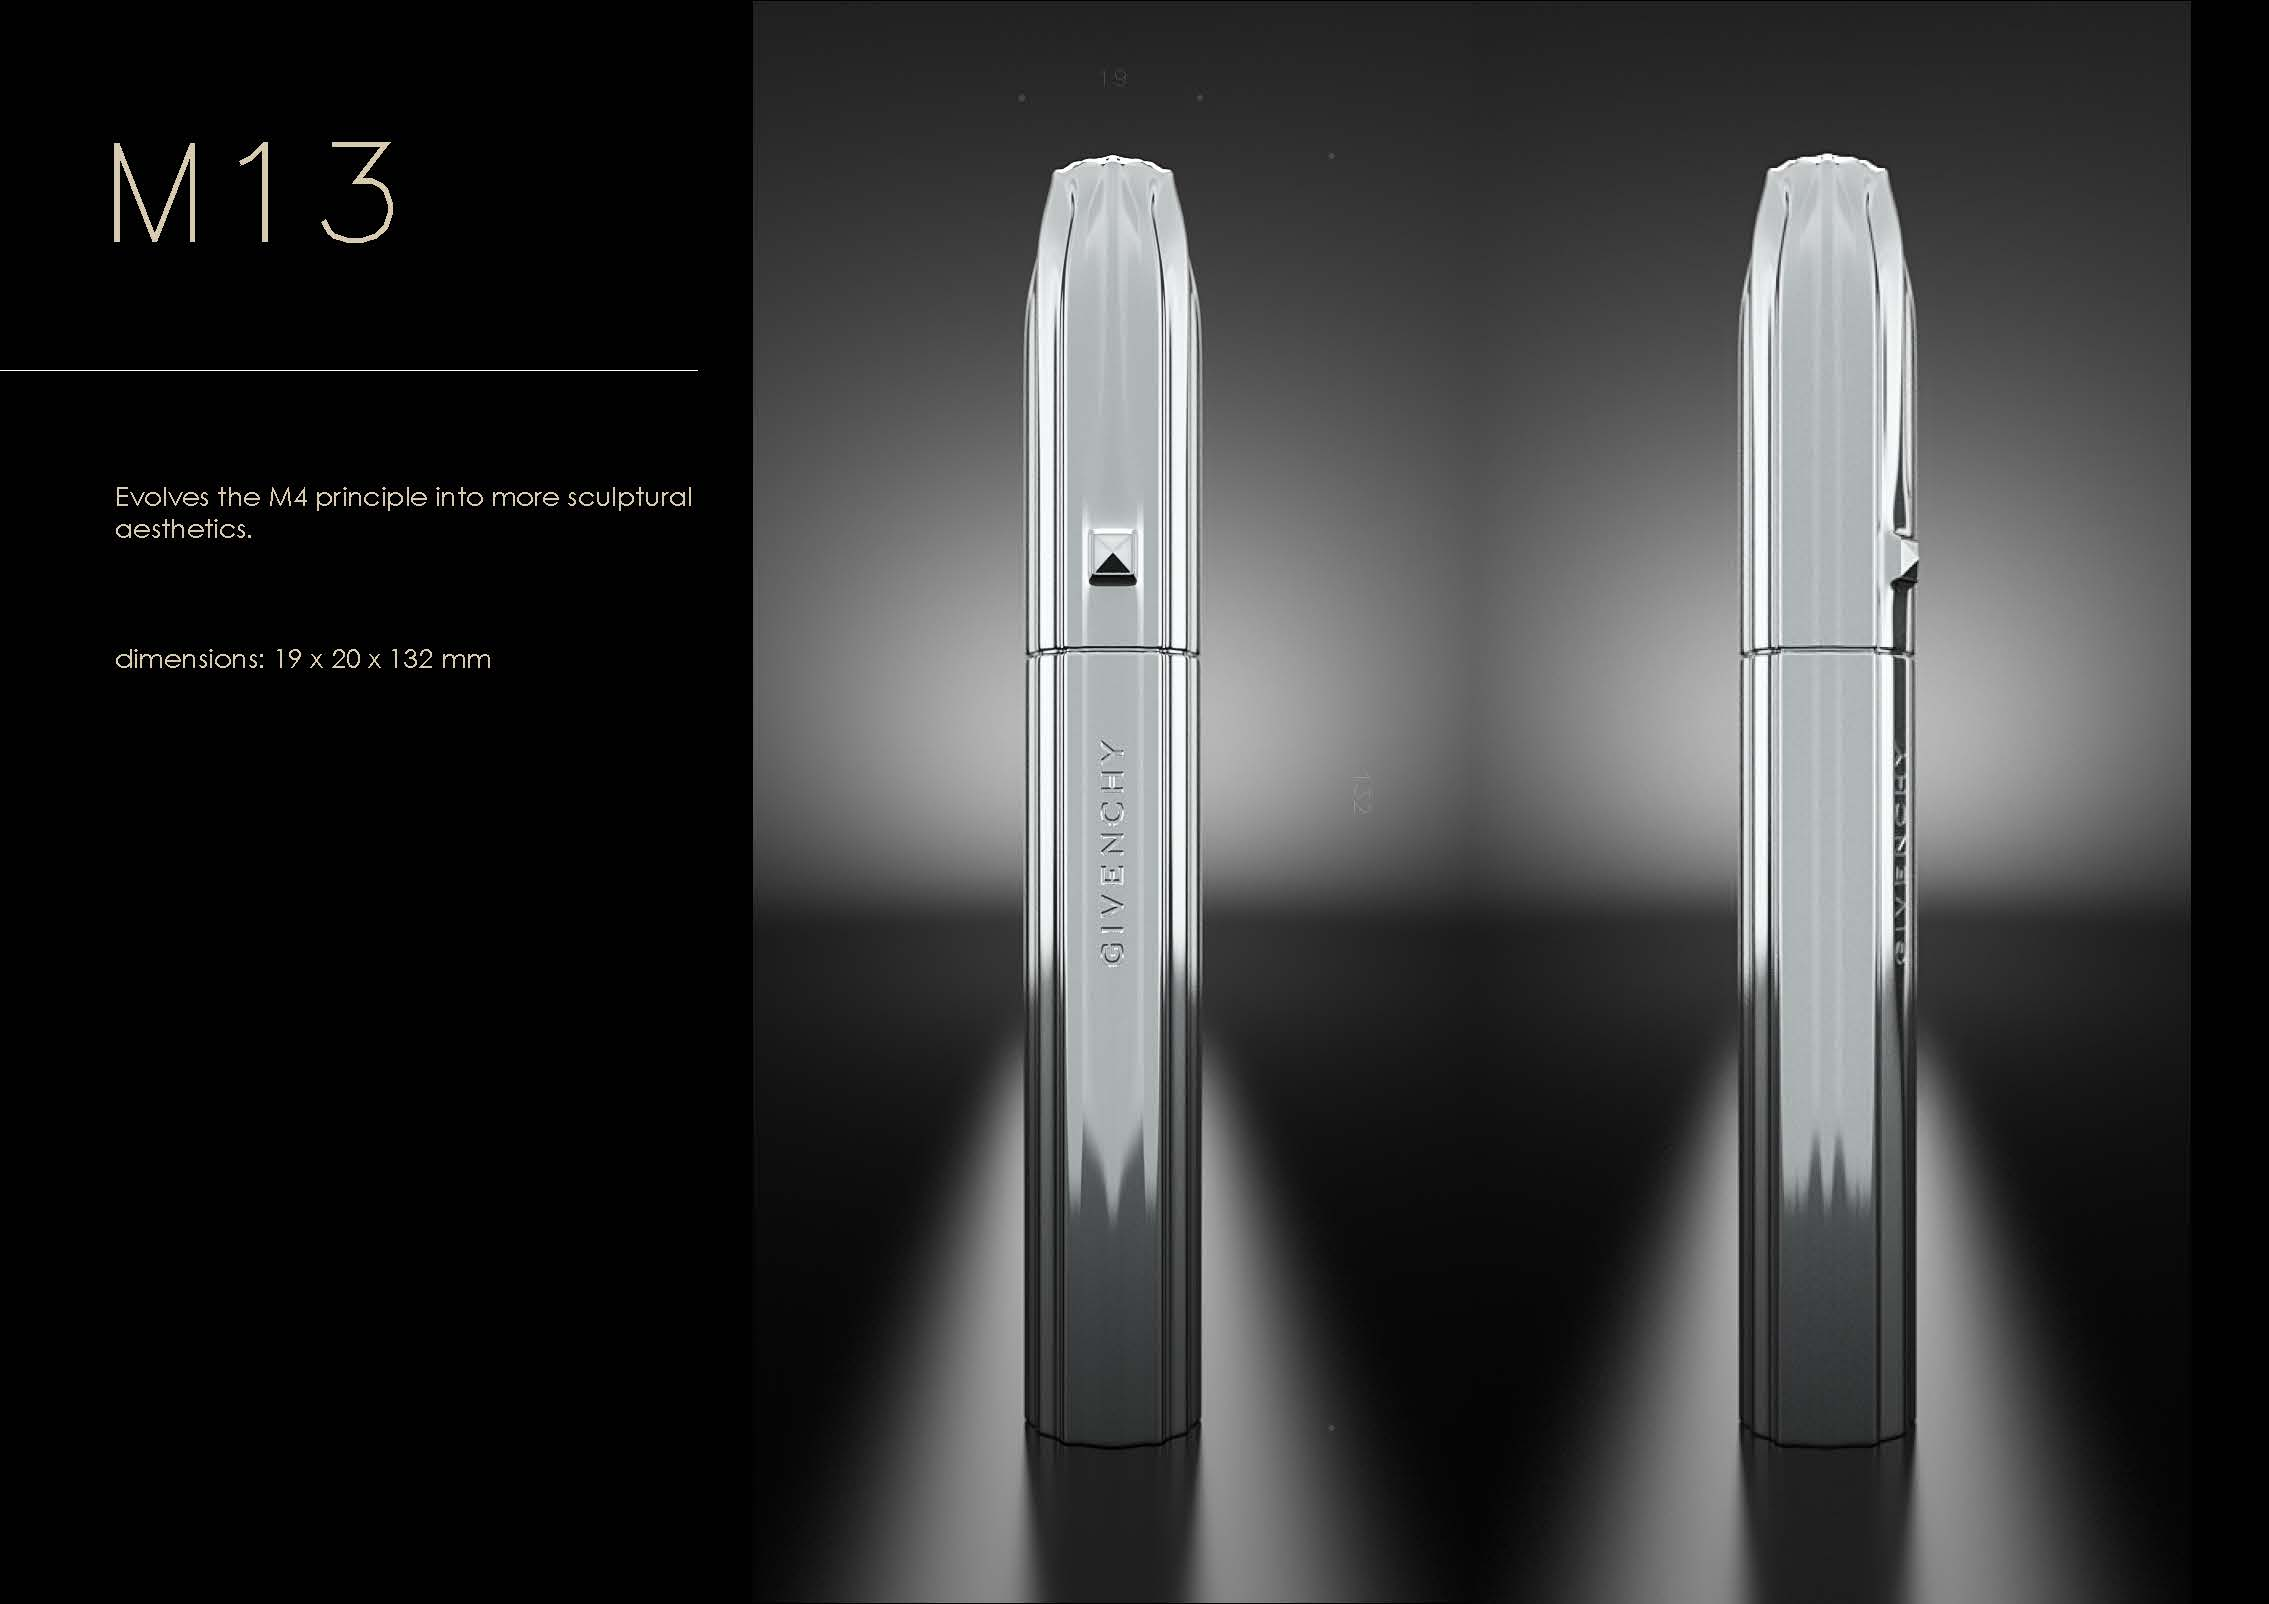 Givenchy mascaras w dimensions, I_Page_29.jpg